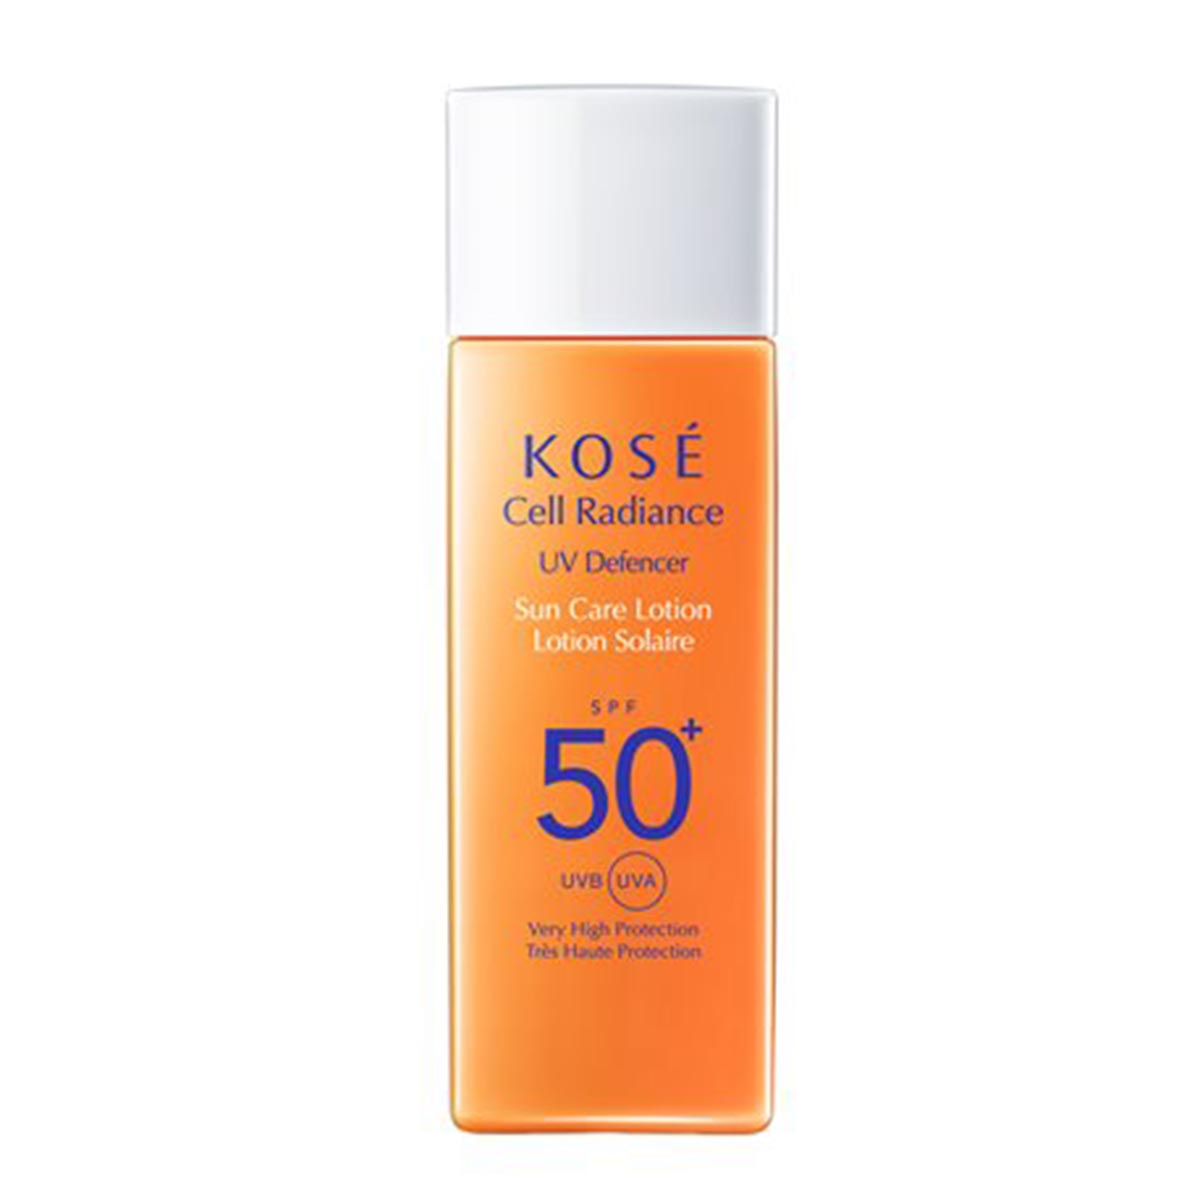 Kose cell radiance uv defencer sun care lotion 50ml